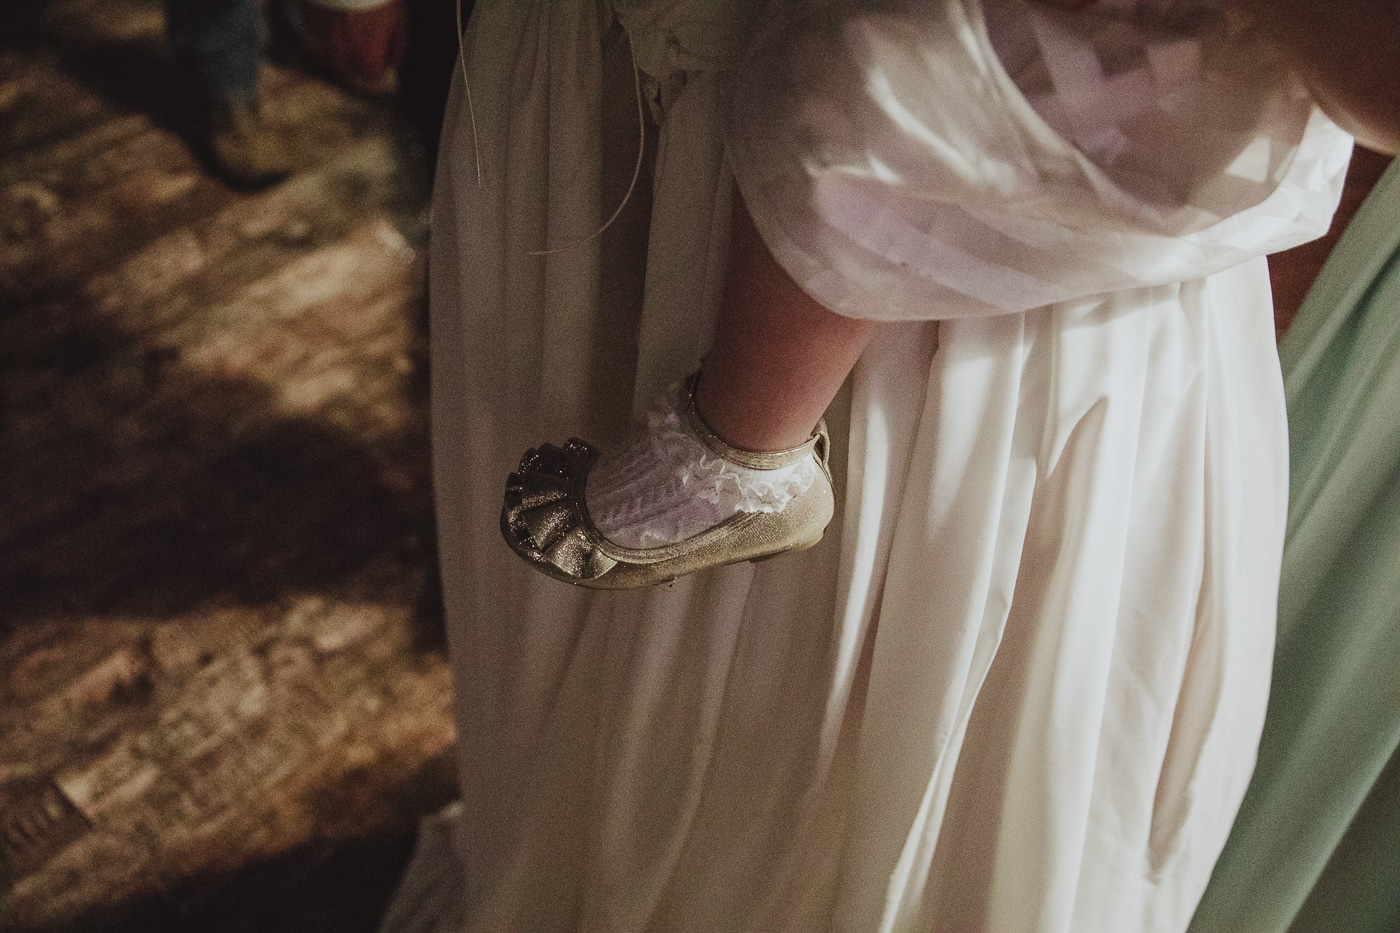 Little girls gold shoes and frilly socks by Joshua Wyborn Photographic